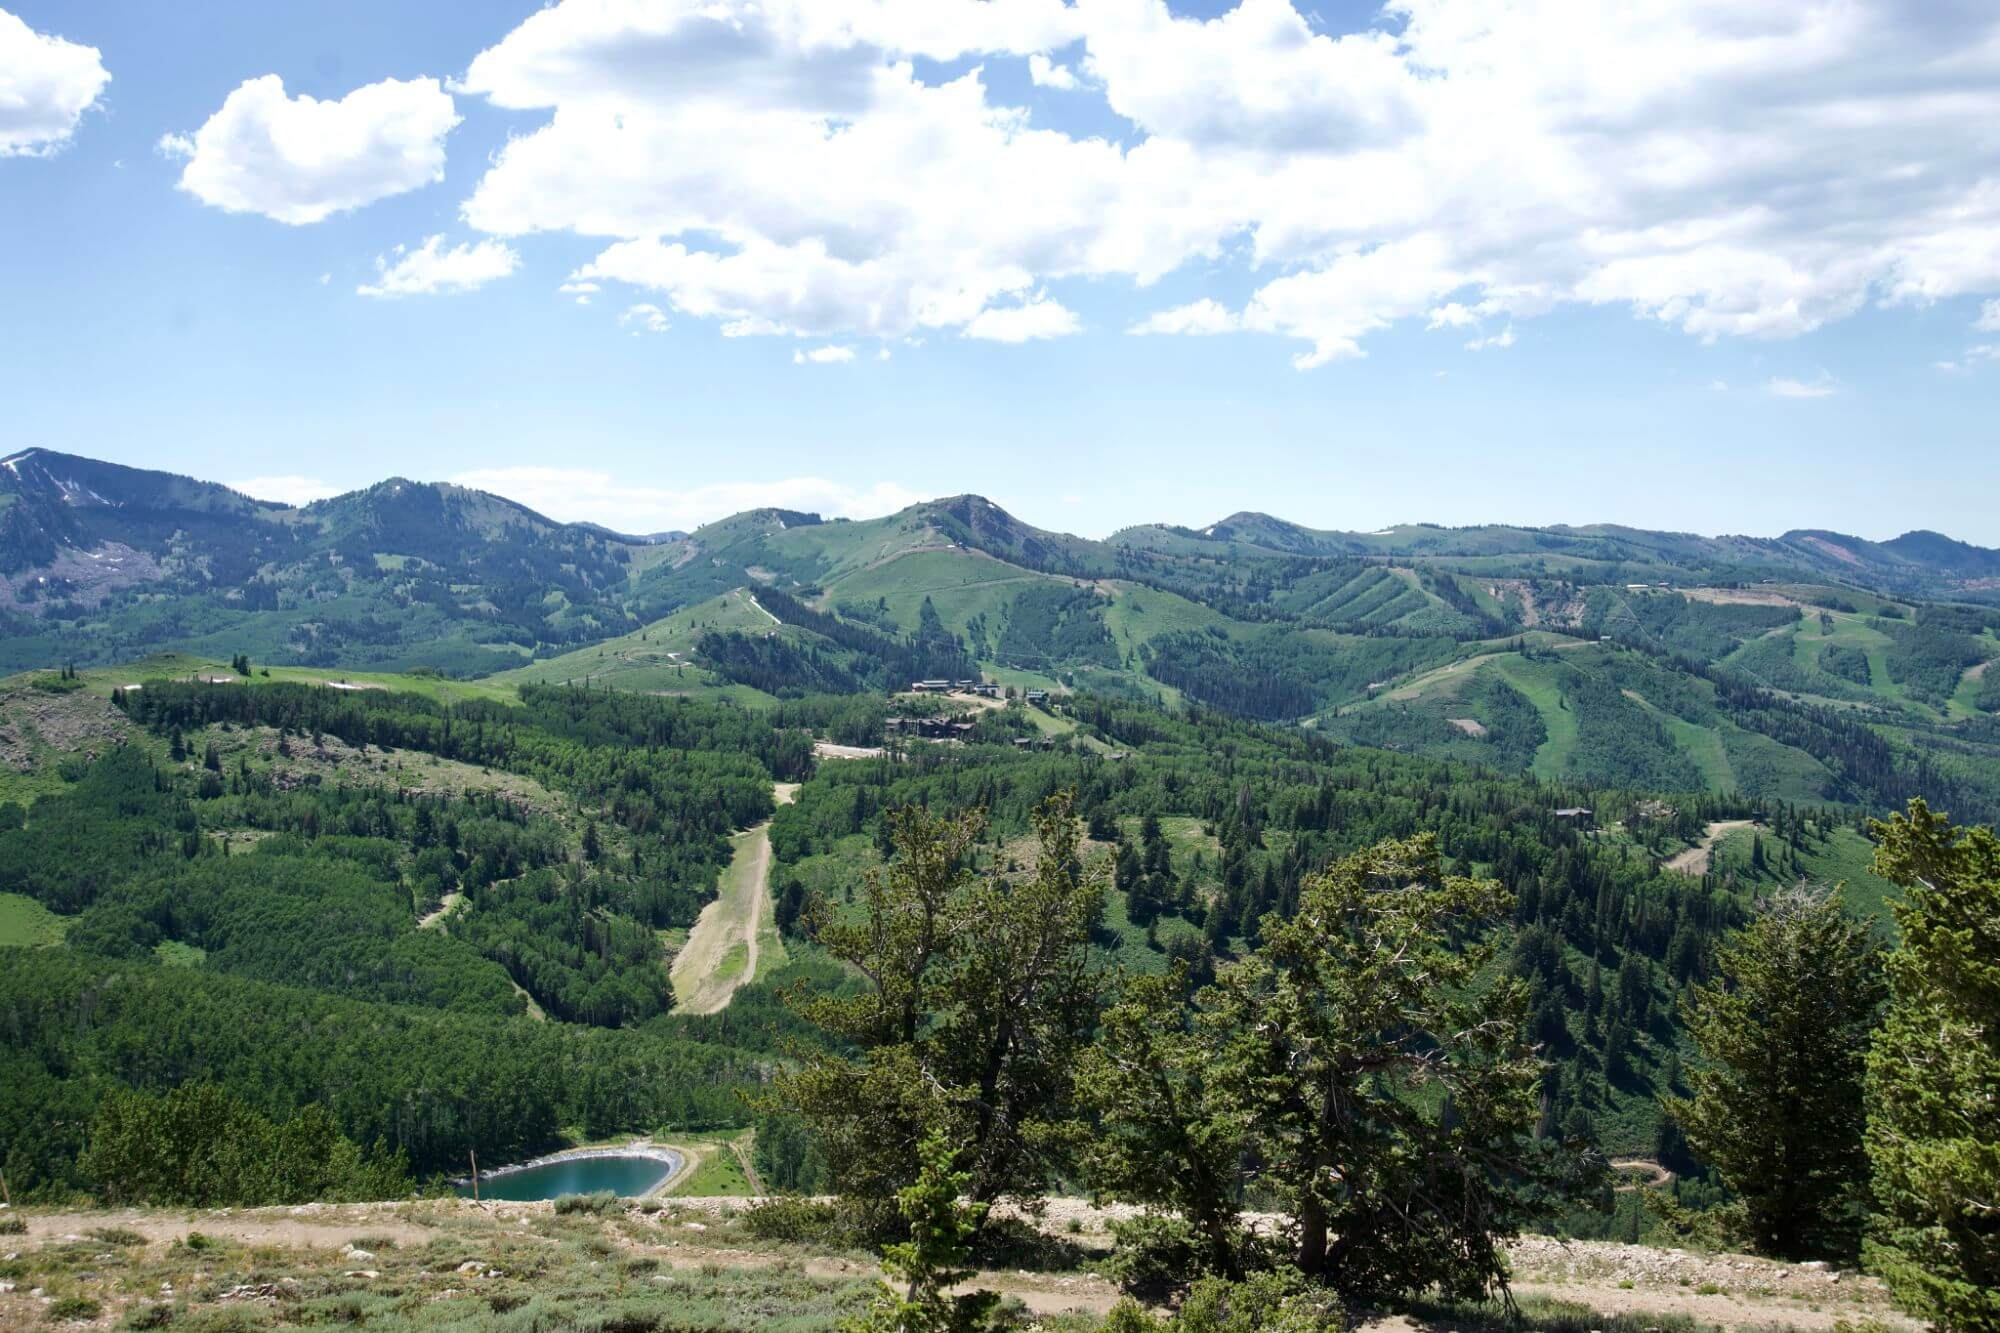 View from the top of Bald Mountain in Deer Valley